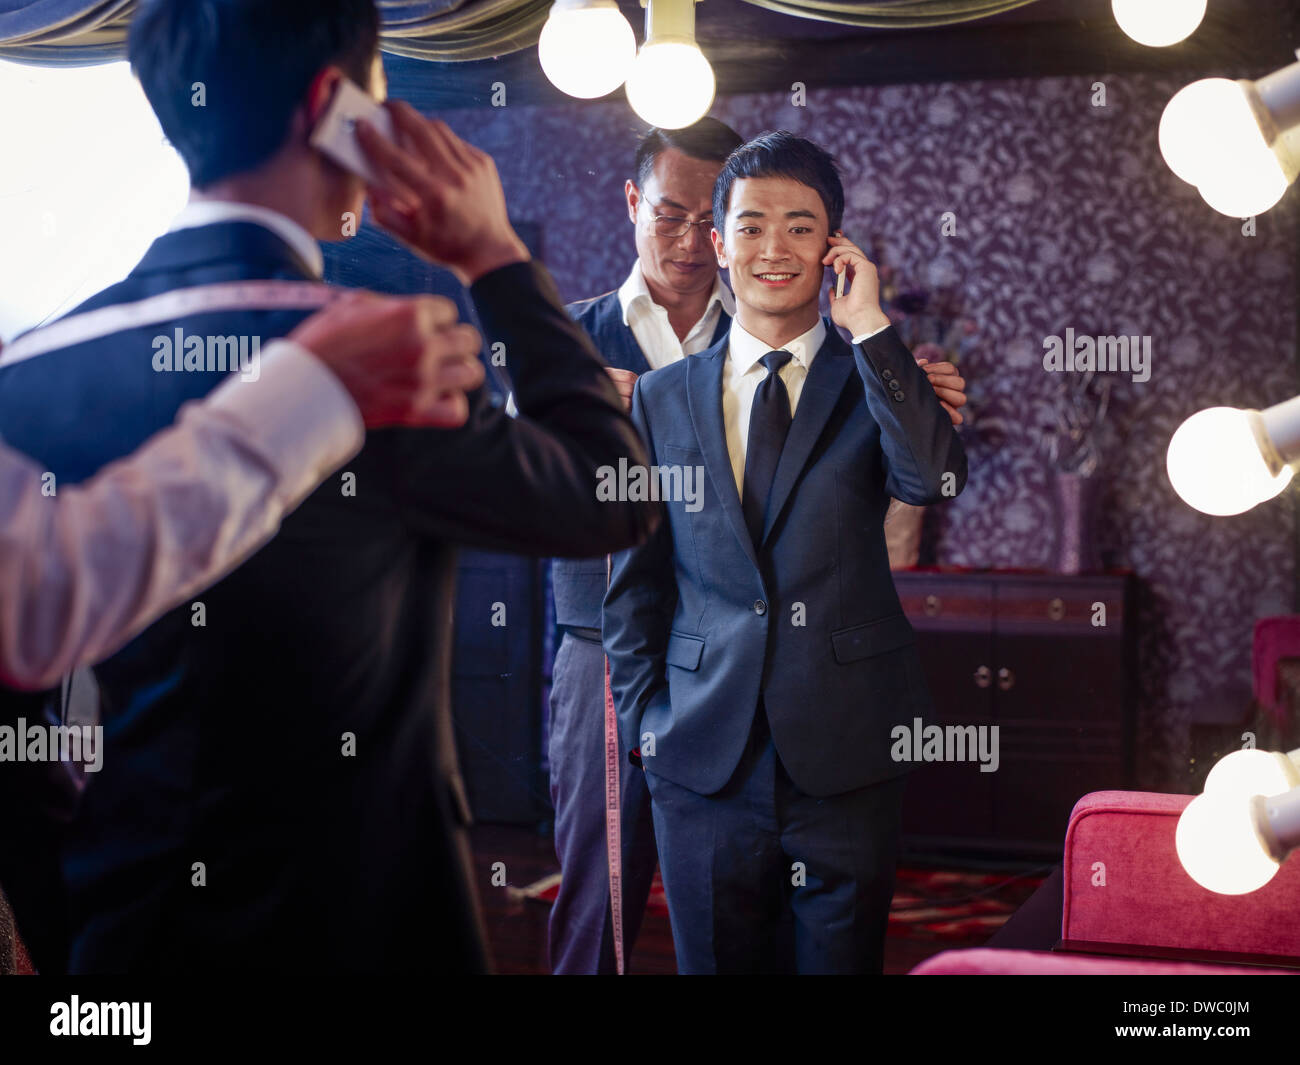 Young man trying on suit in traditional tailors shop - Stock Image